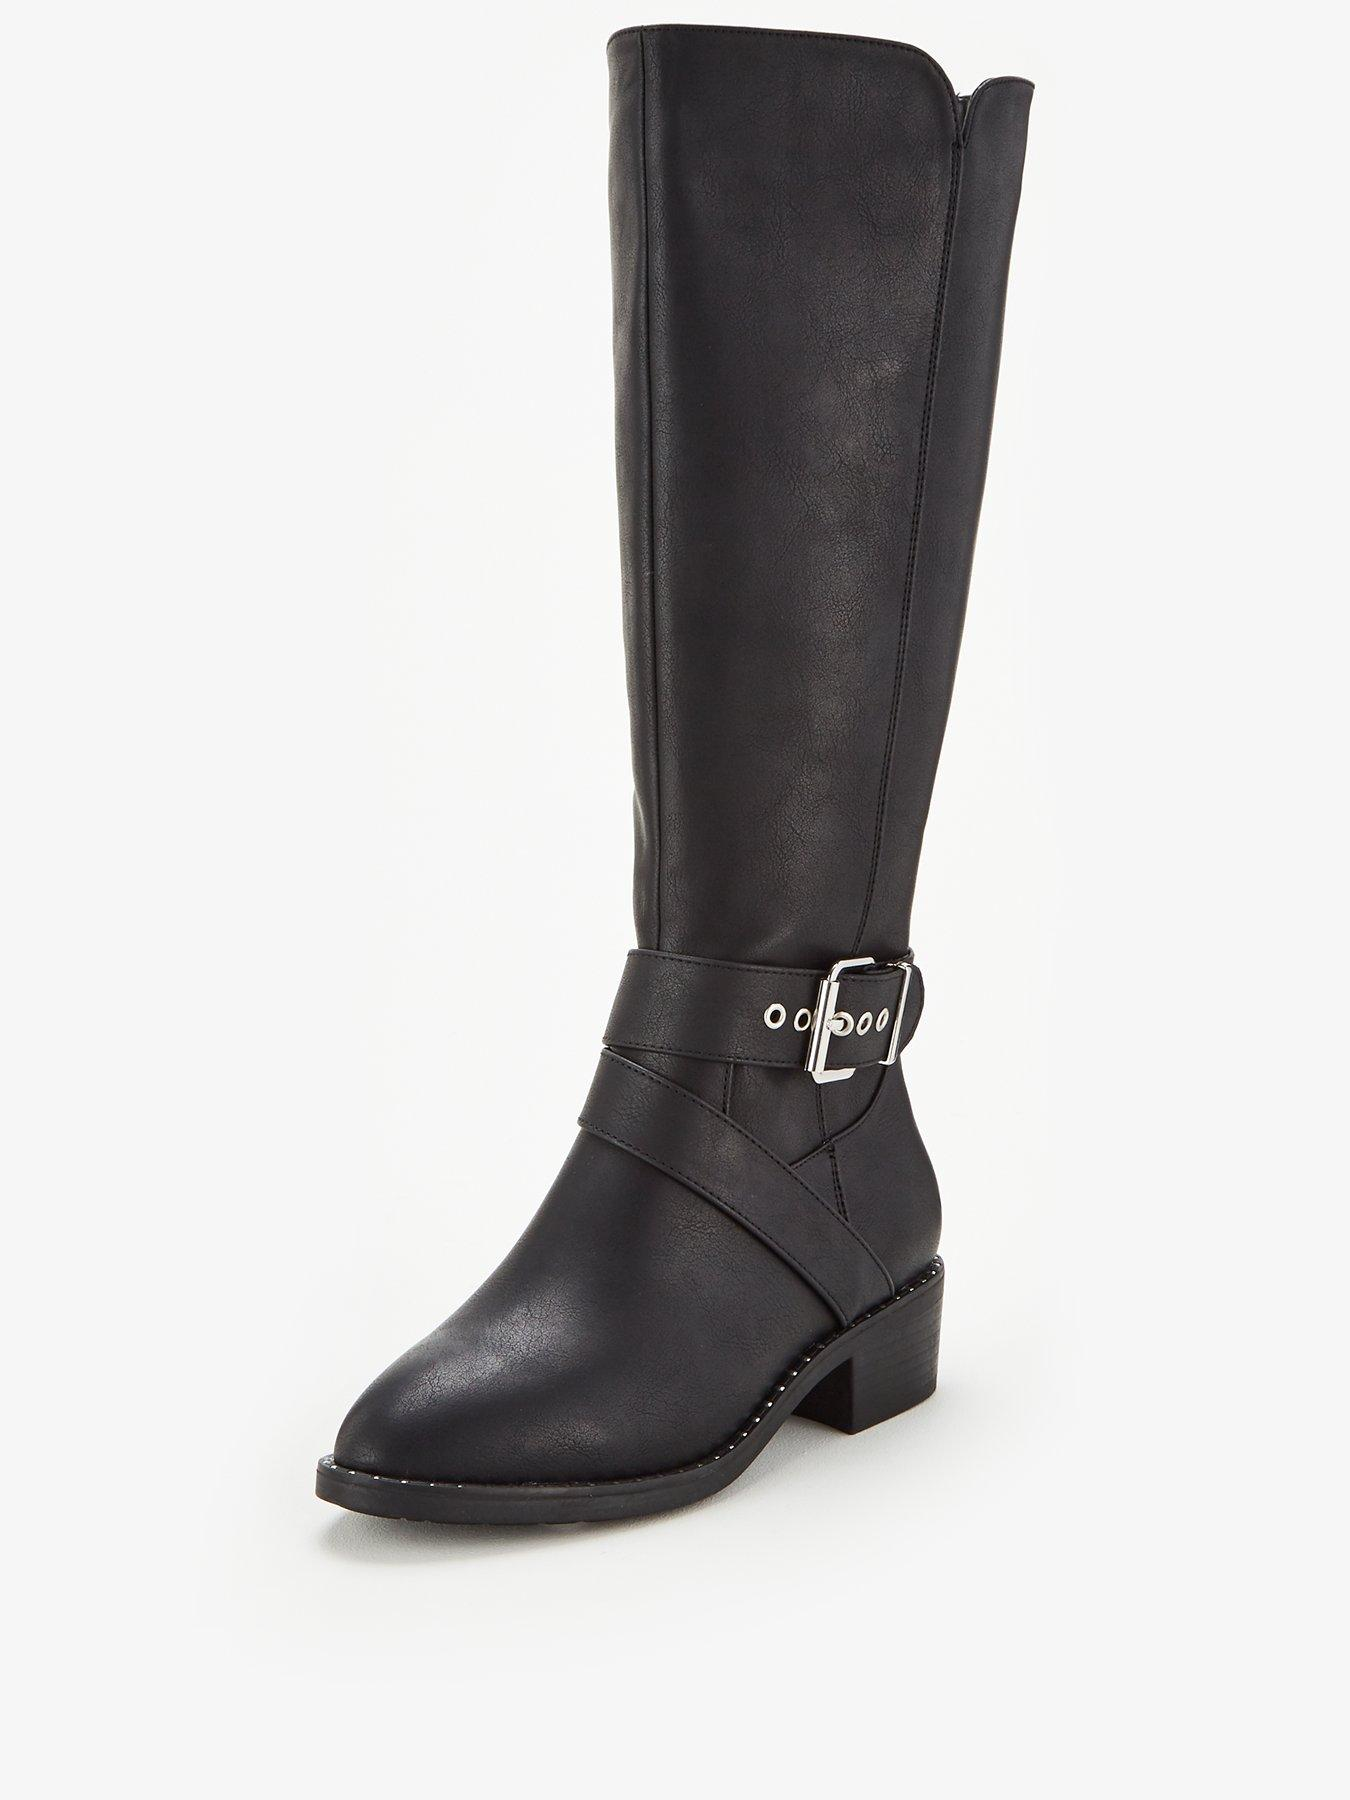 Black | Knee High Boots | Boots | Shoes